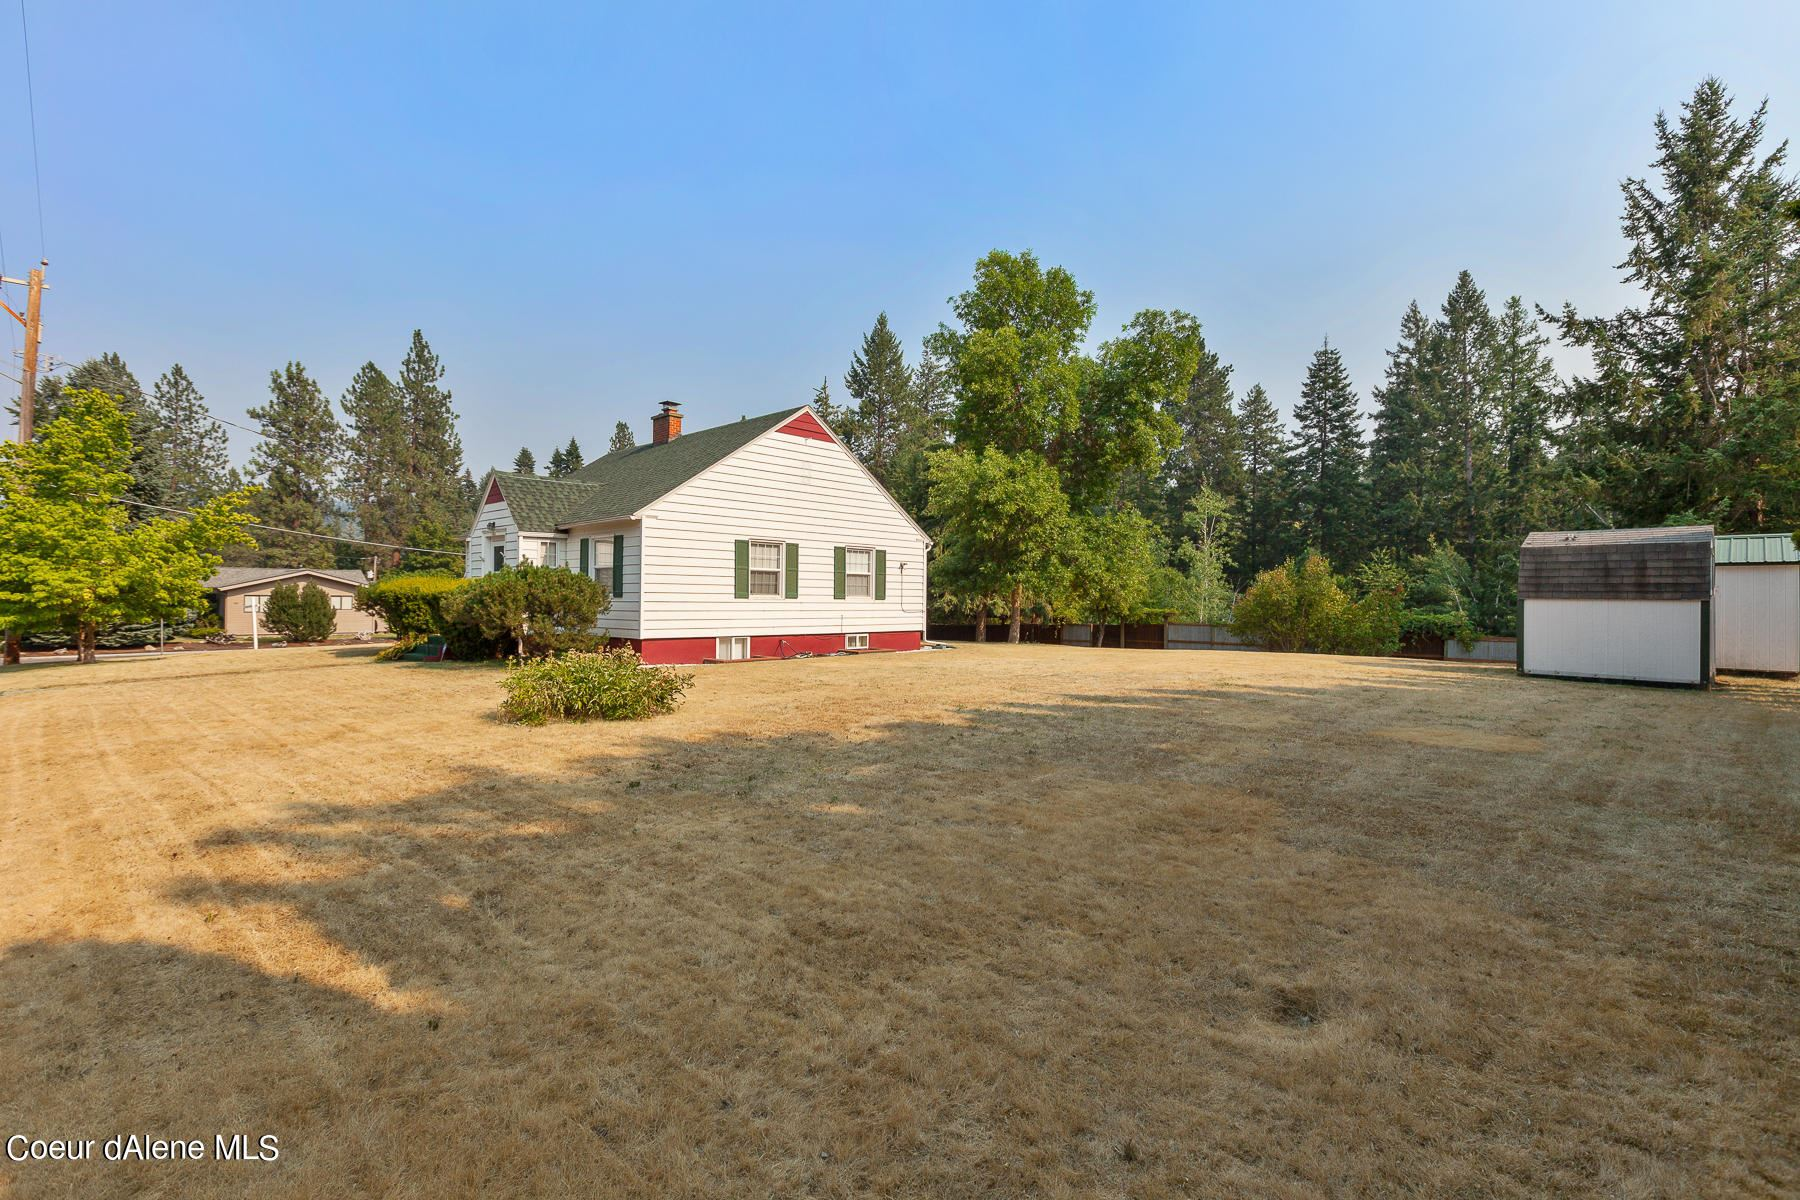 Photo of 1520 E Young Ave, Coeur dAlene, ID 83814 (MLS # 21-7428)